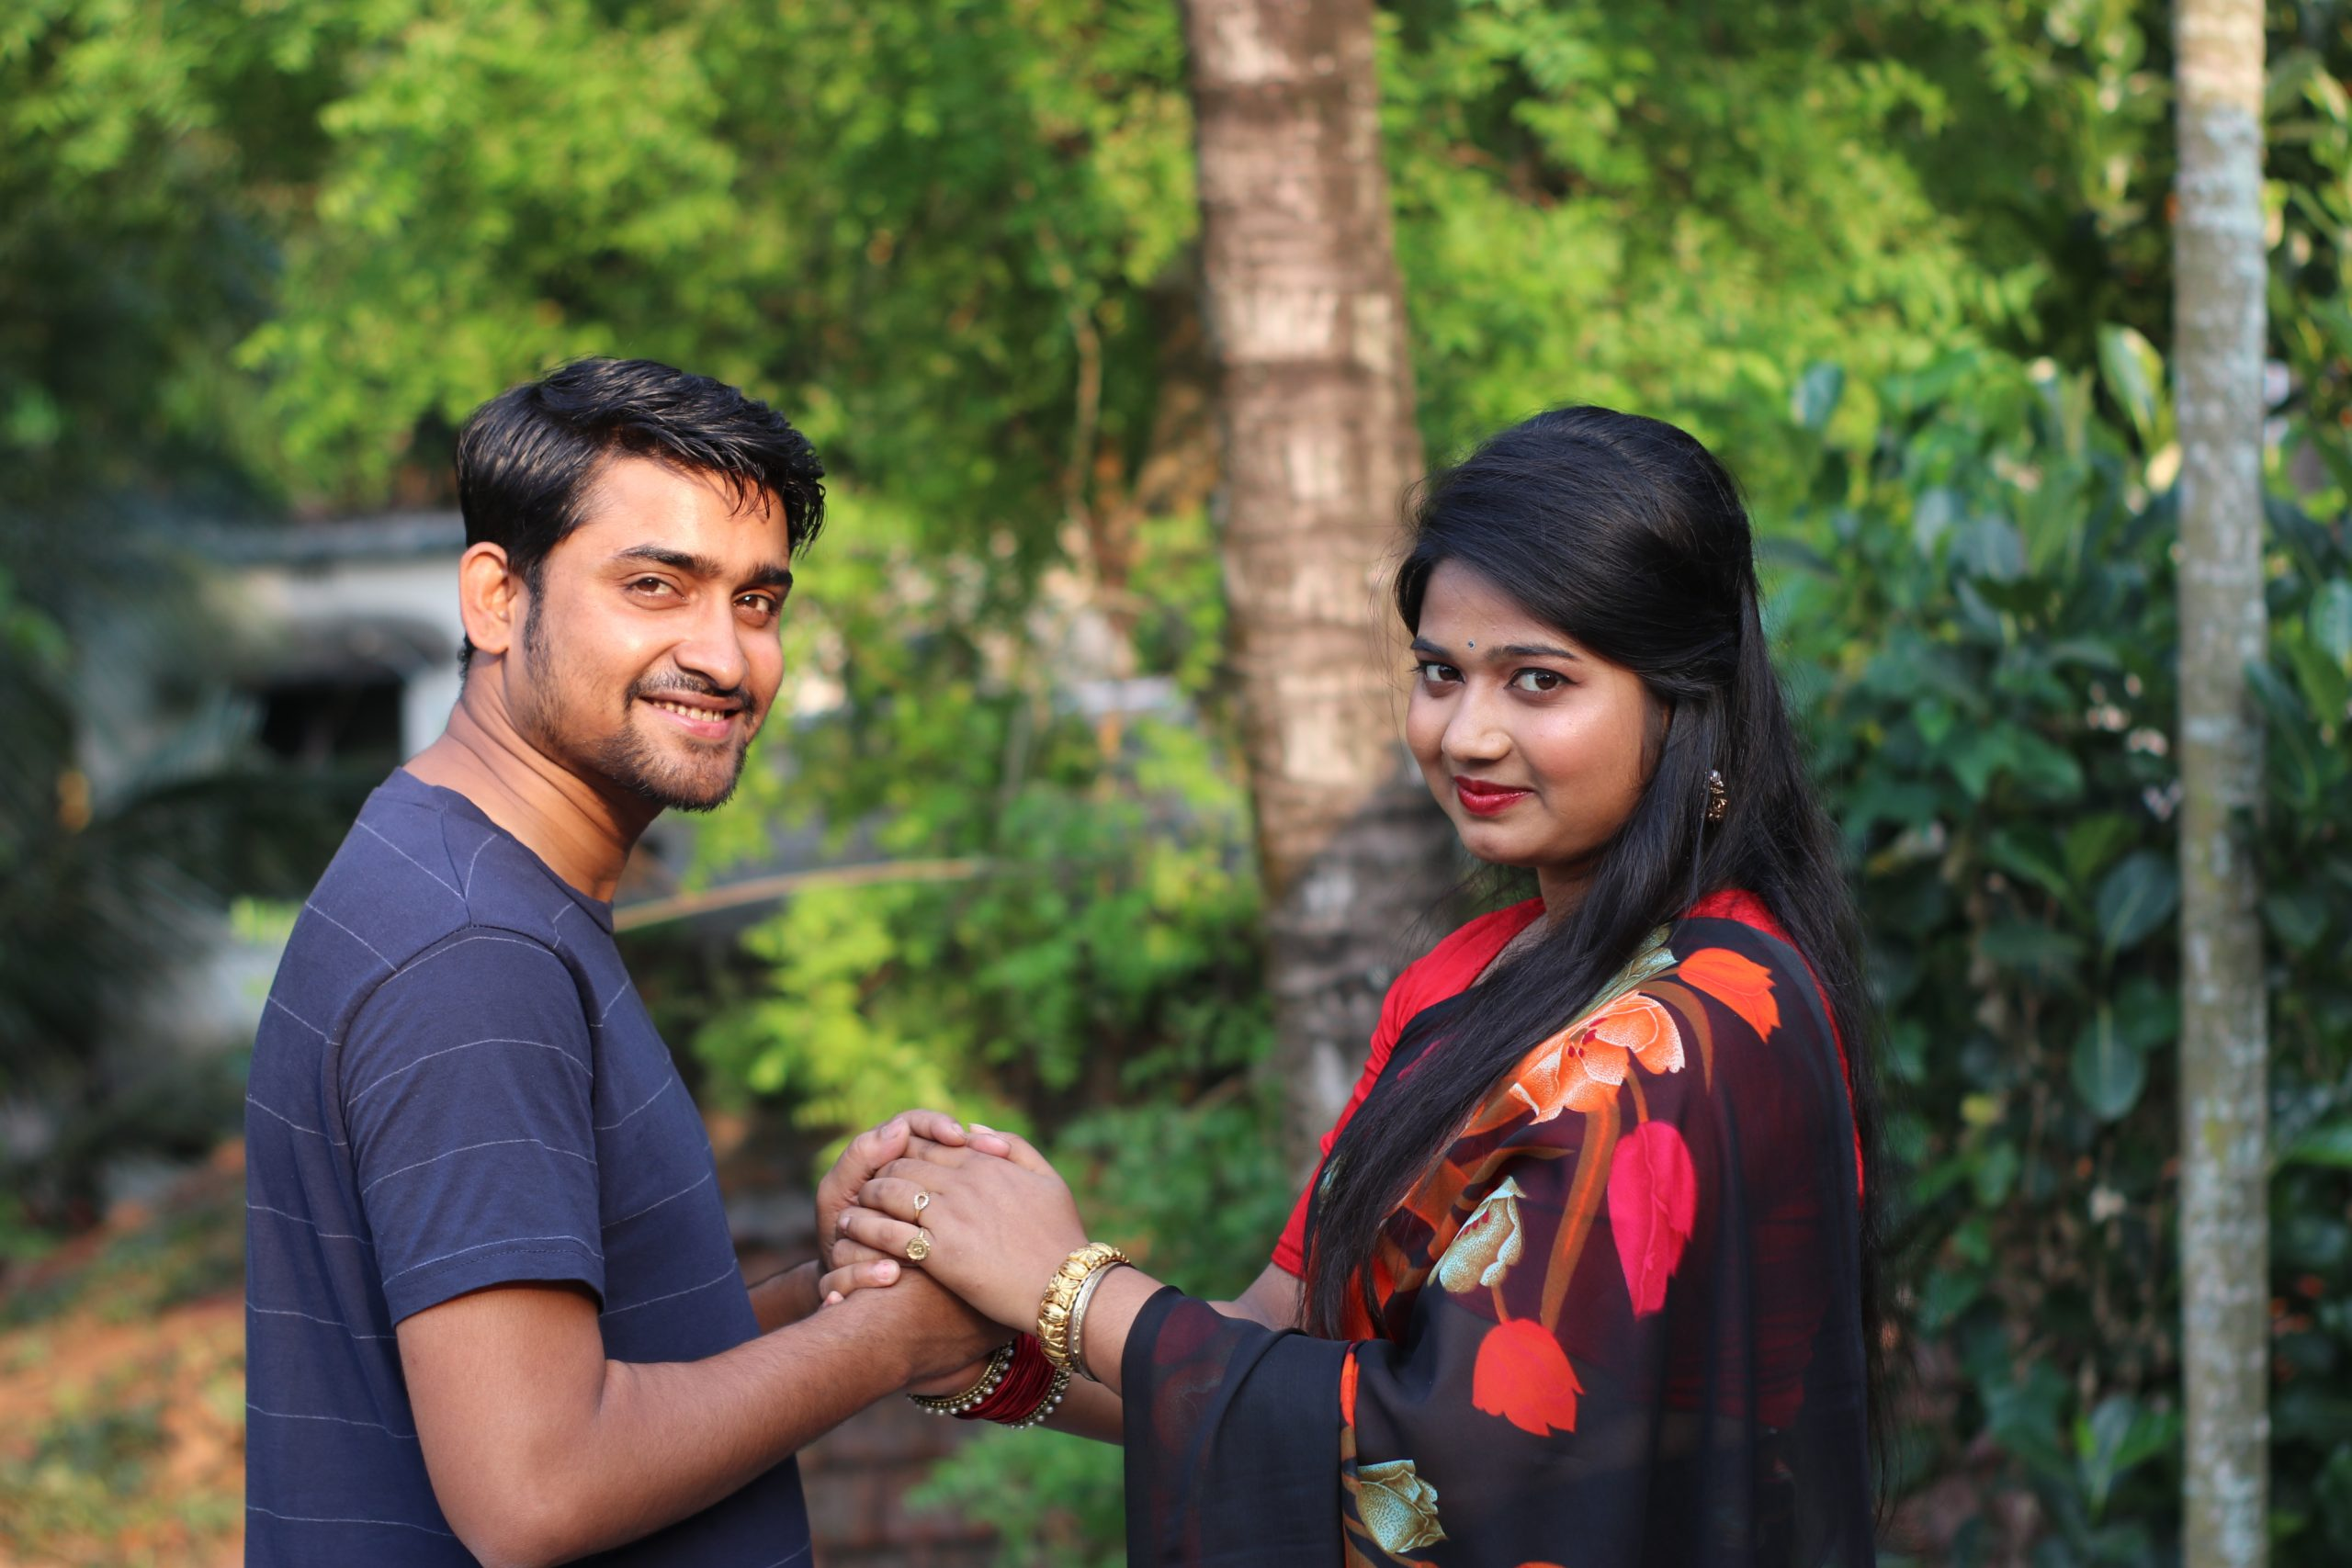 A happy Indian couple